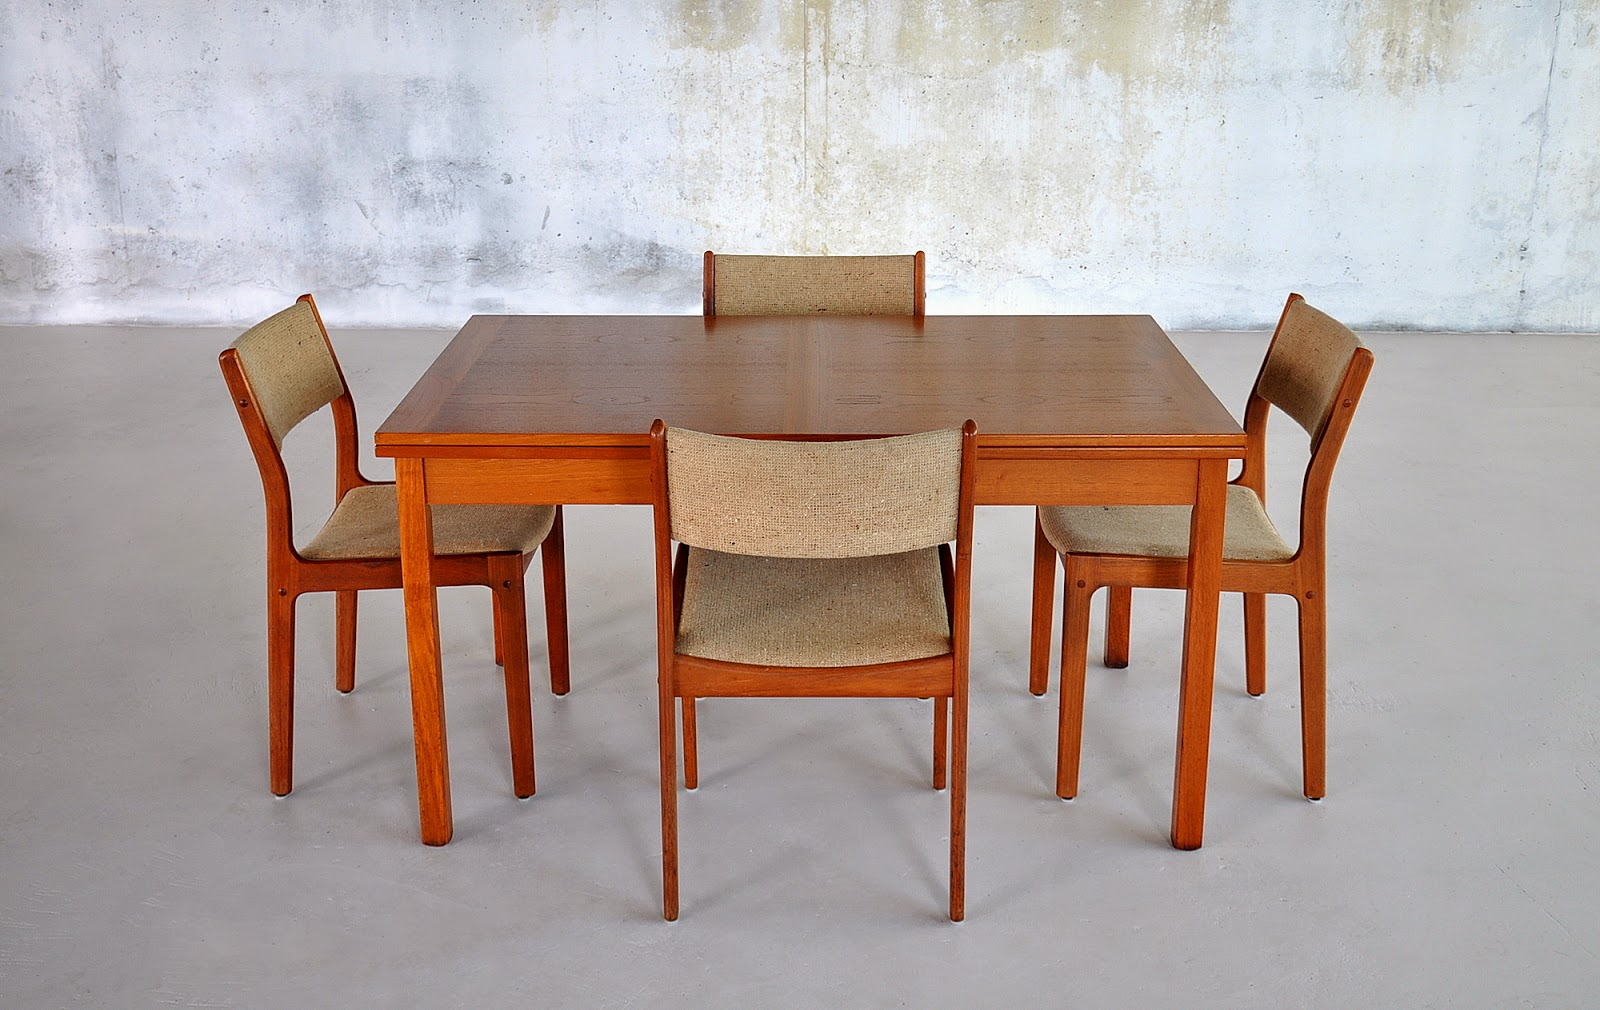 Select Modern Danish Modern Expandable Teak Dining Room Table